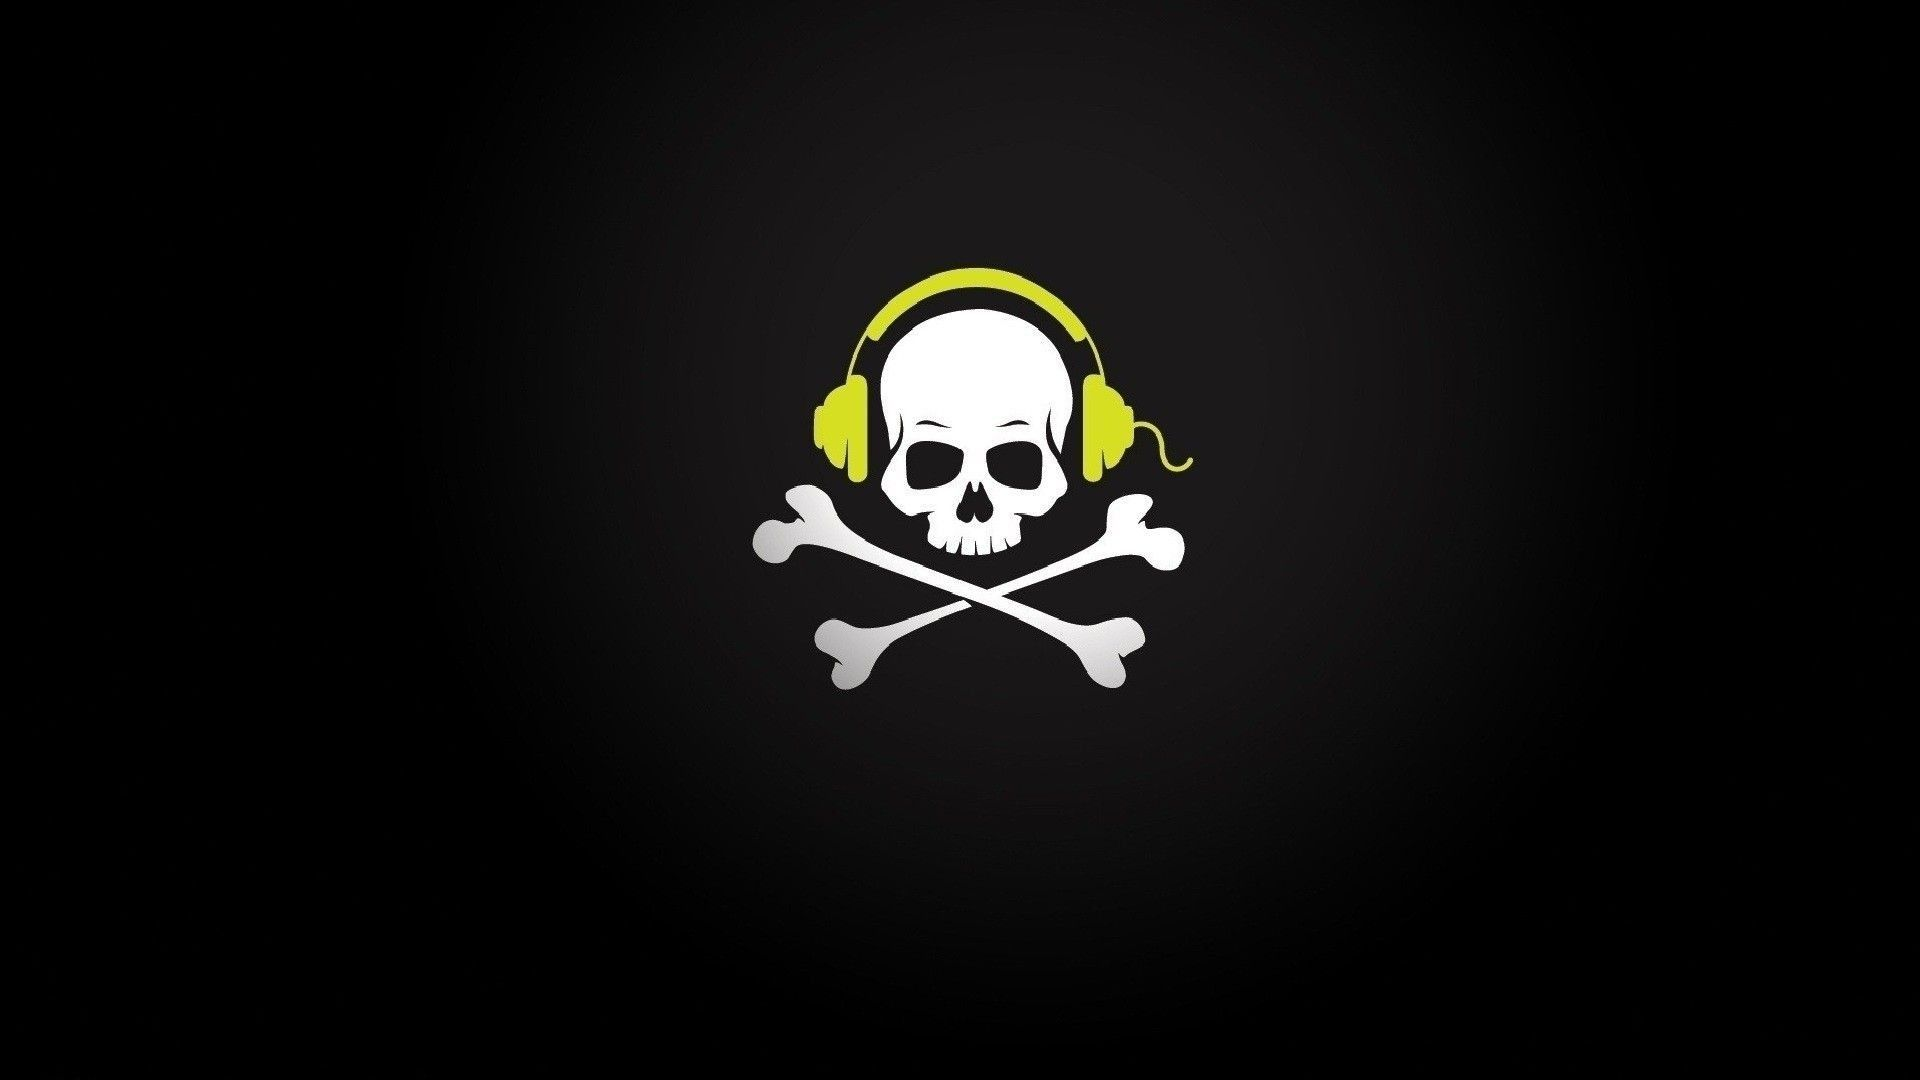 1920x1080 Pirate Skull in yellow headphones wallpapers and images - wallpapers ...